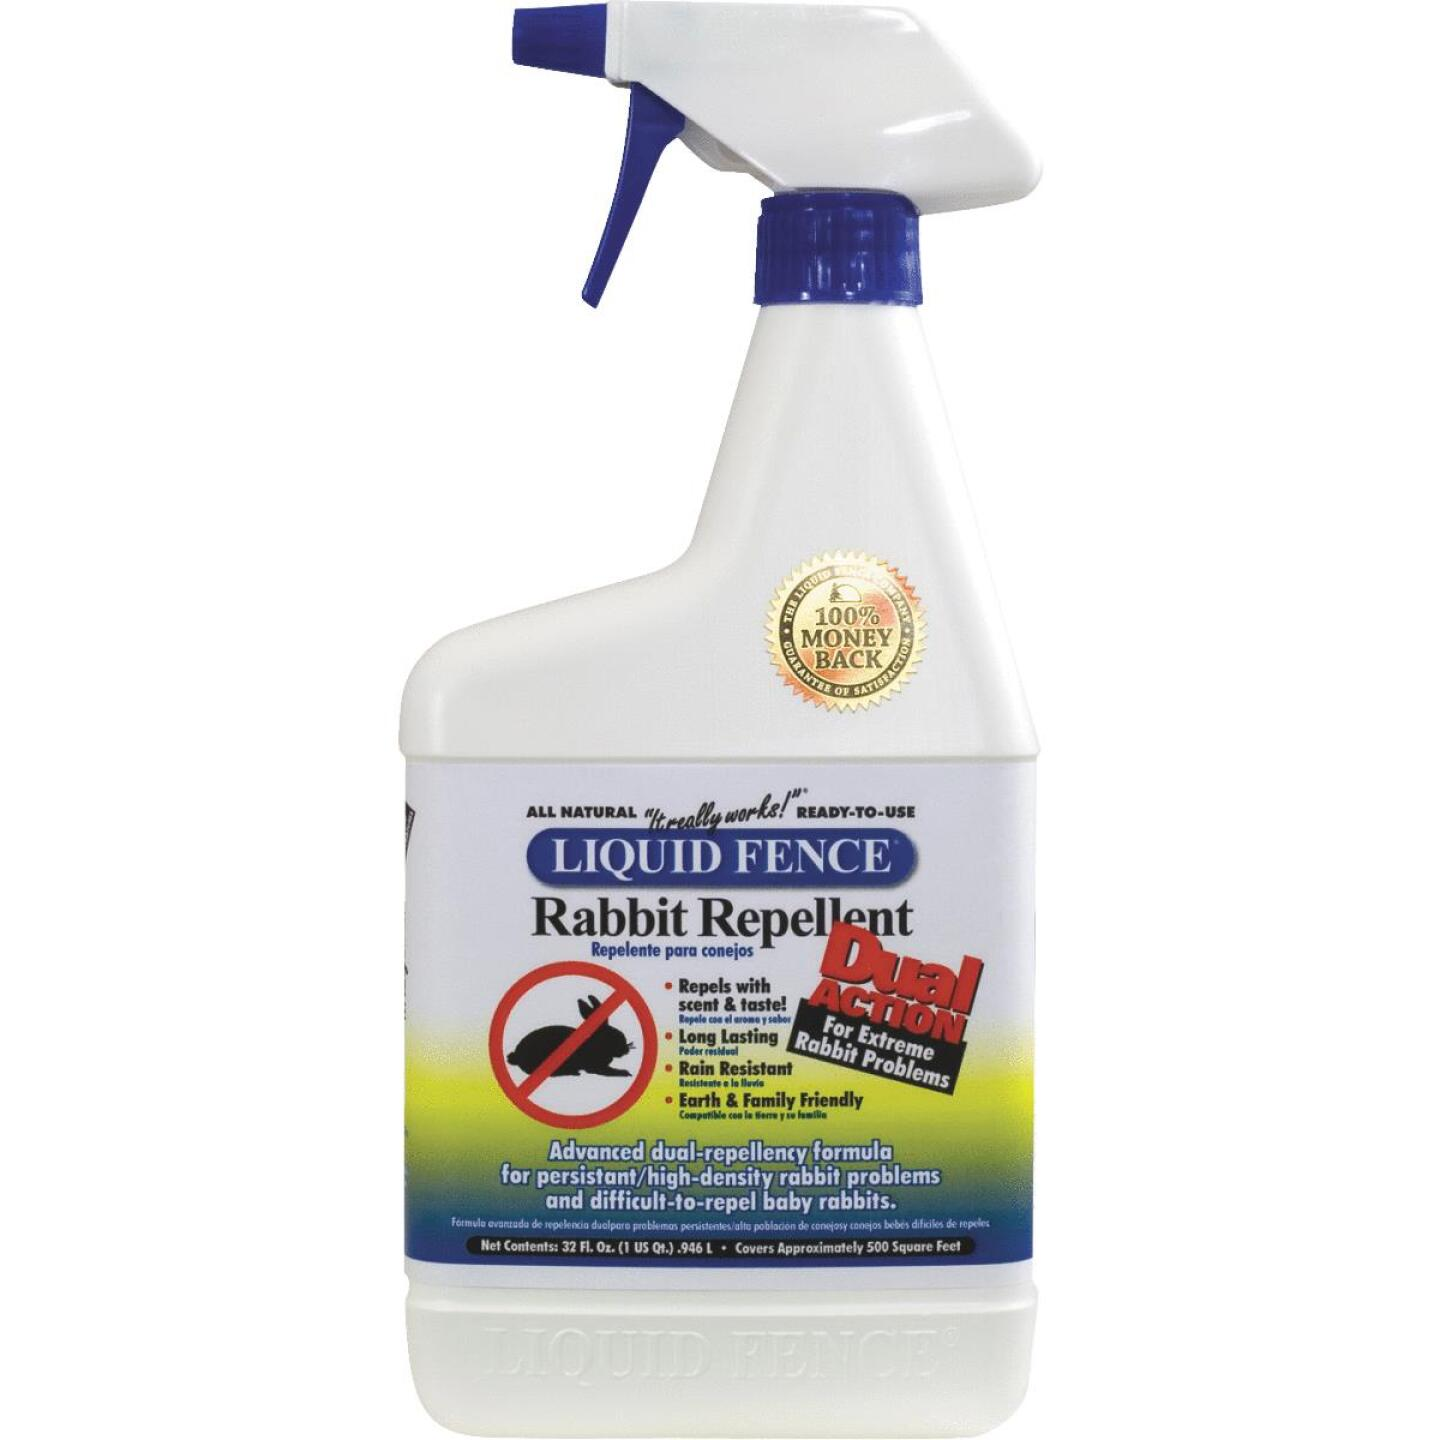 Liquid Fence 32 Oz. Ready To Use Dual Action Rabbit Repellent Image 1